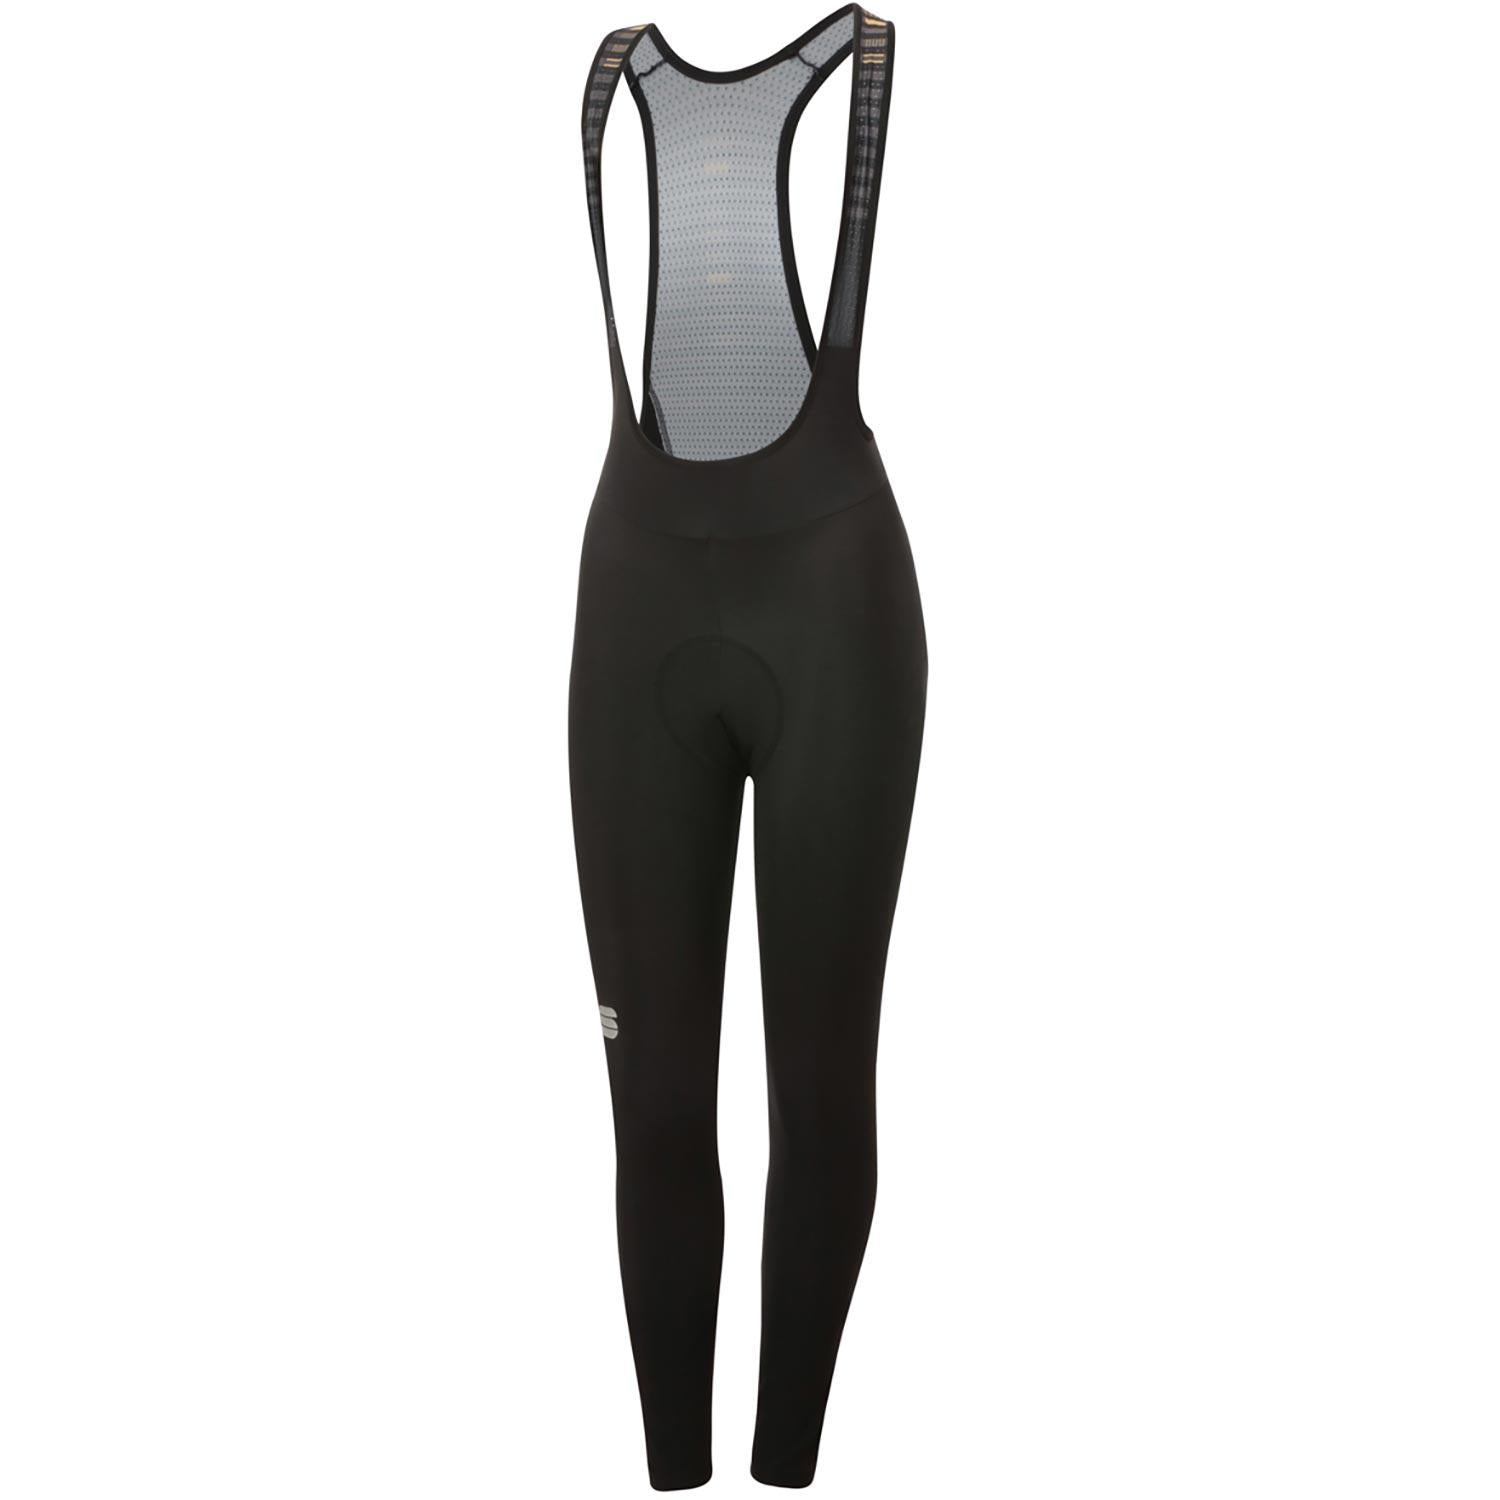 Sportful-Sportful Classic Women's Bibtights-Black-XS-SF205360021-saddleback-elite-performance-cycling